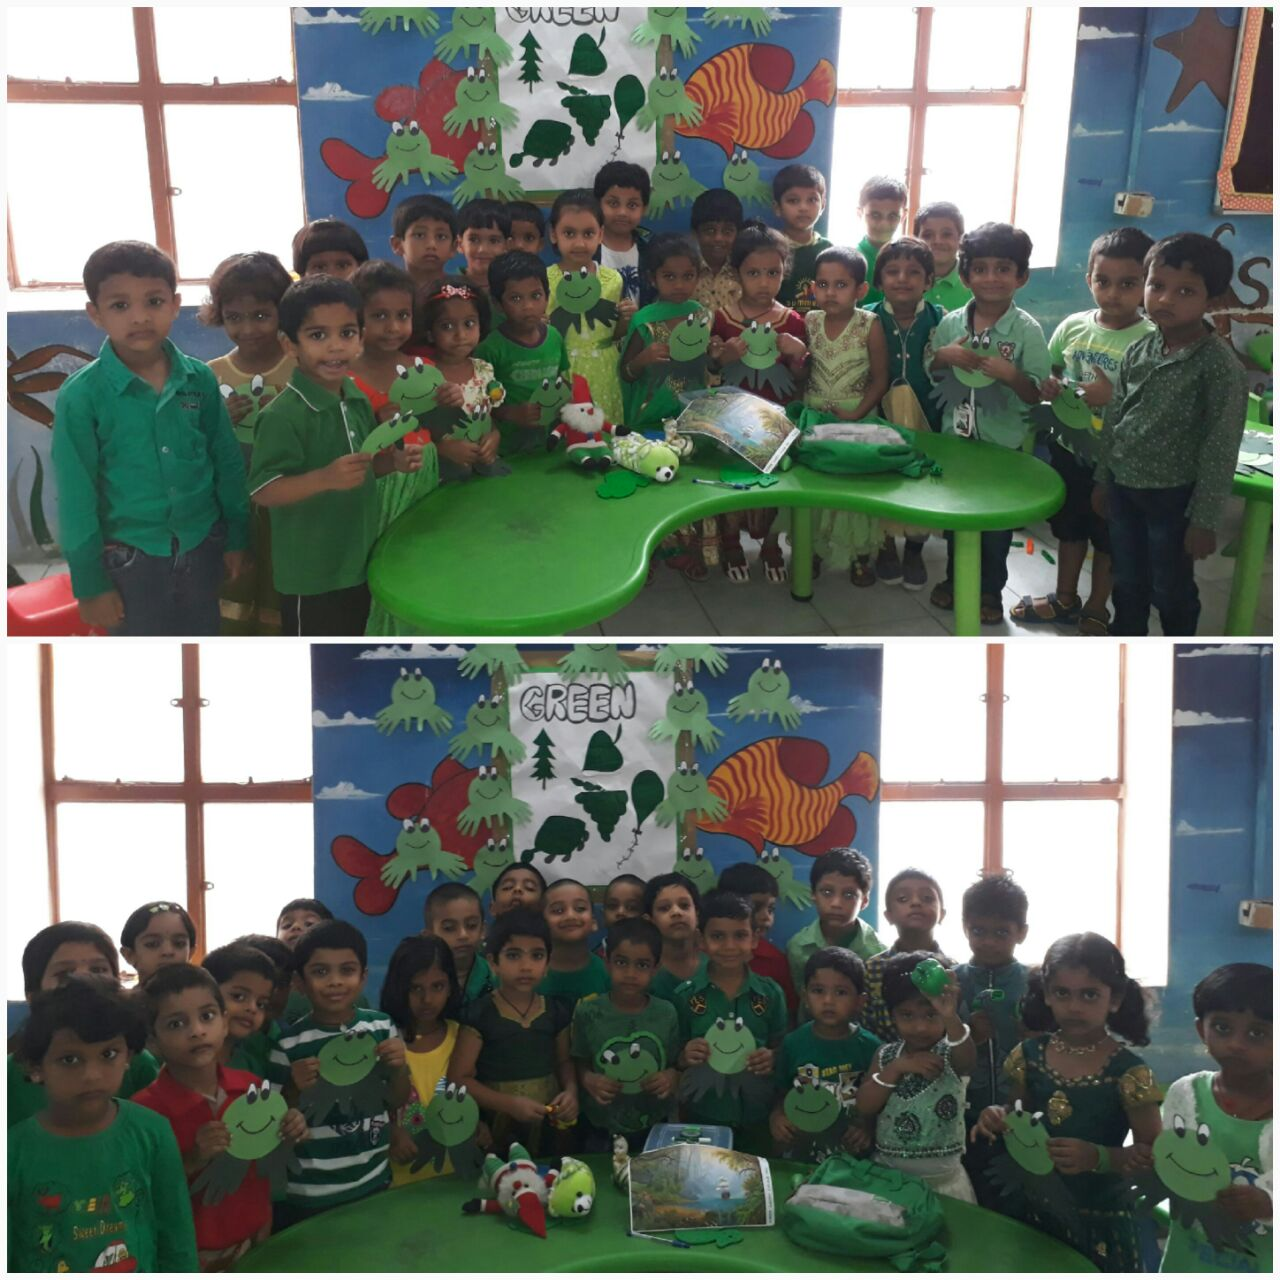 Green Day celebrations